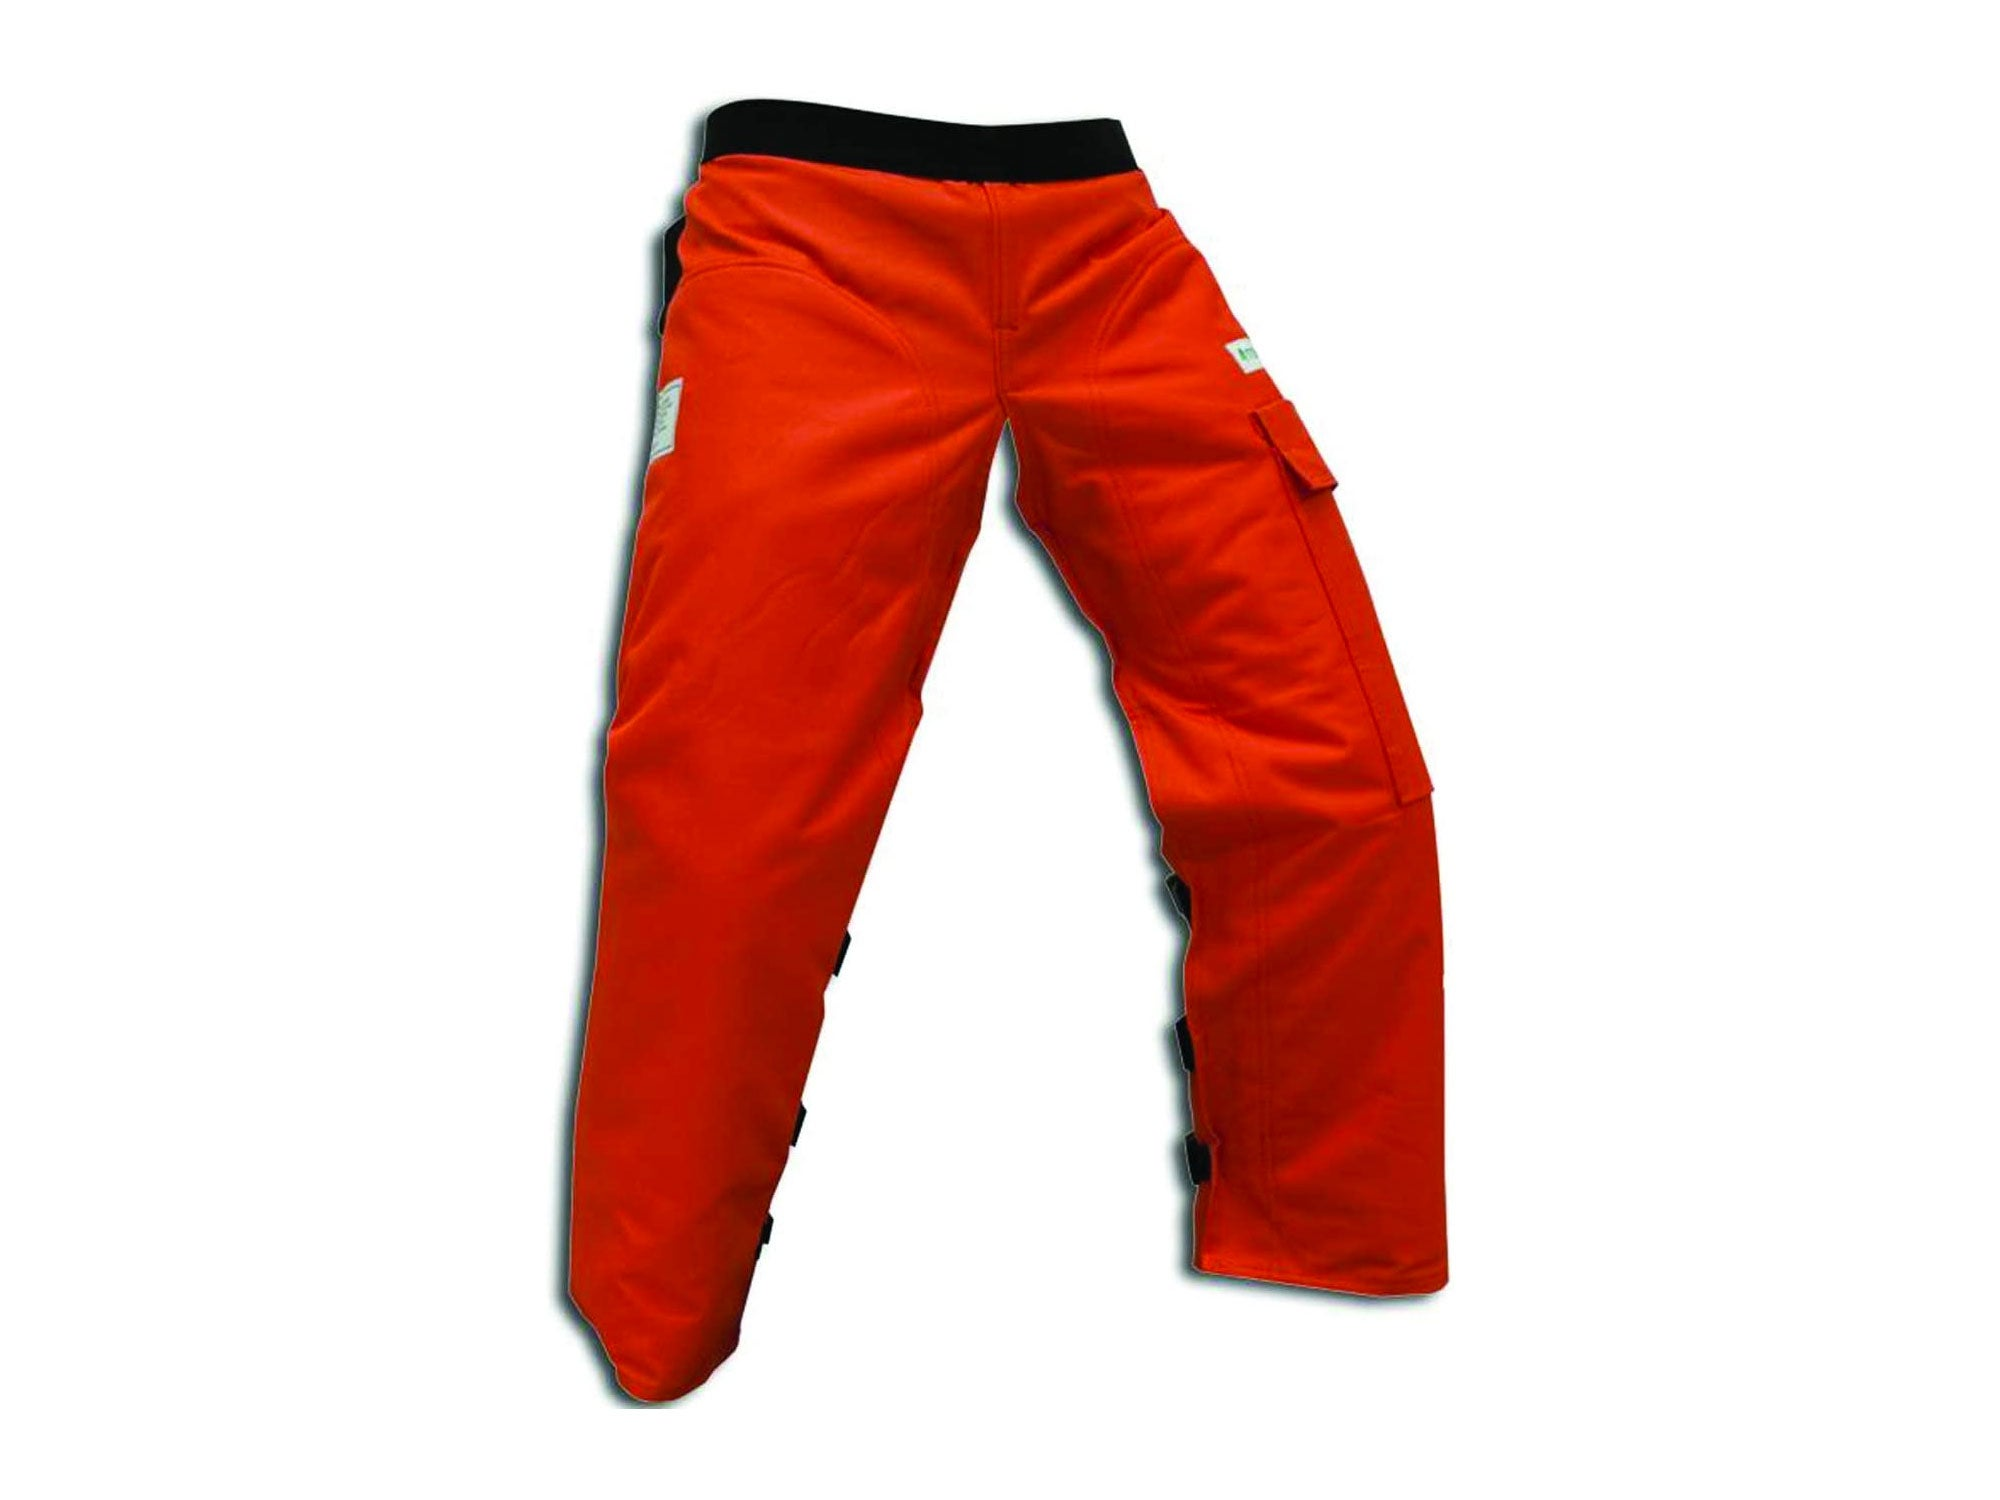 Forester Chainsaw Apron Chaps with Pocket